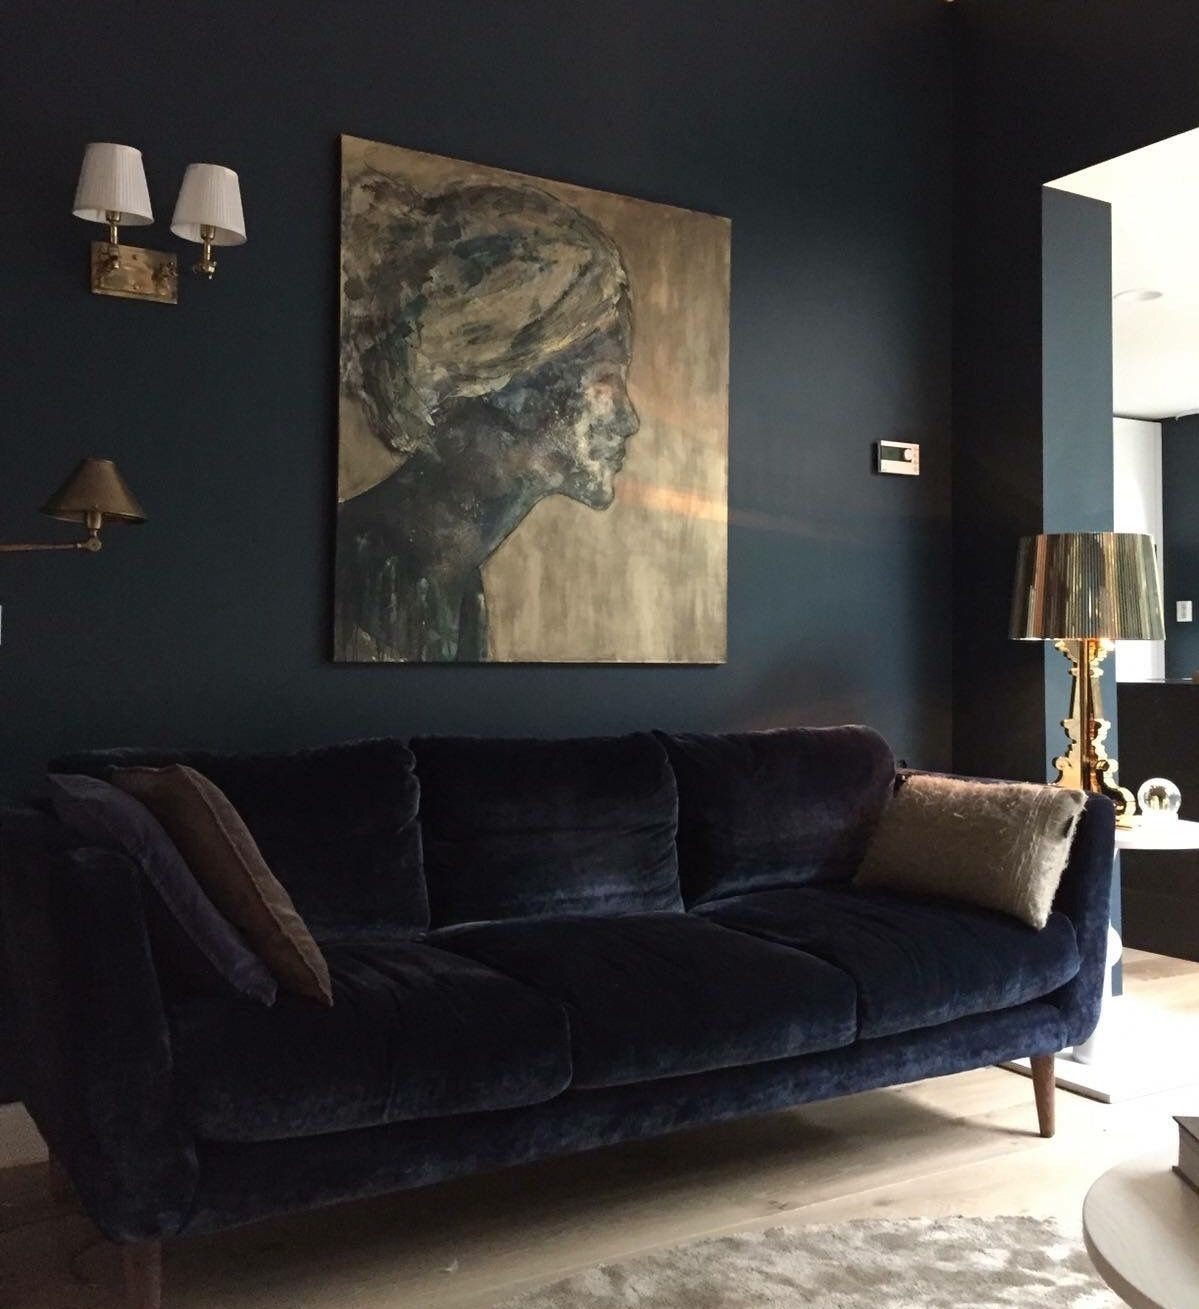 appealing black living room interior designs | Pin by Lori Yeager Davis on D'Nest | Dark paint colors ...